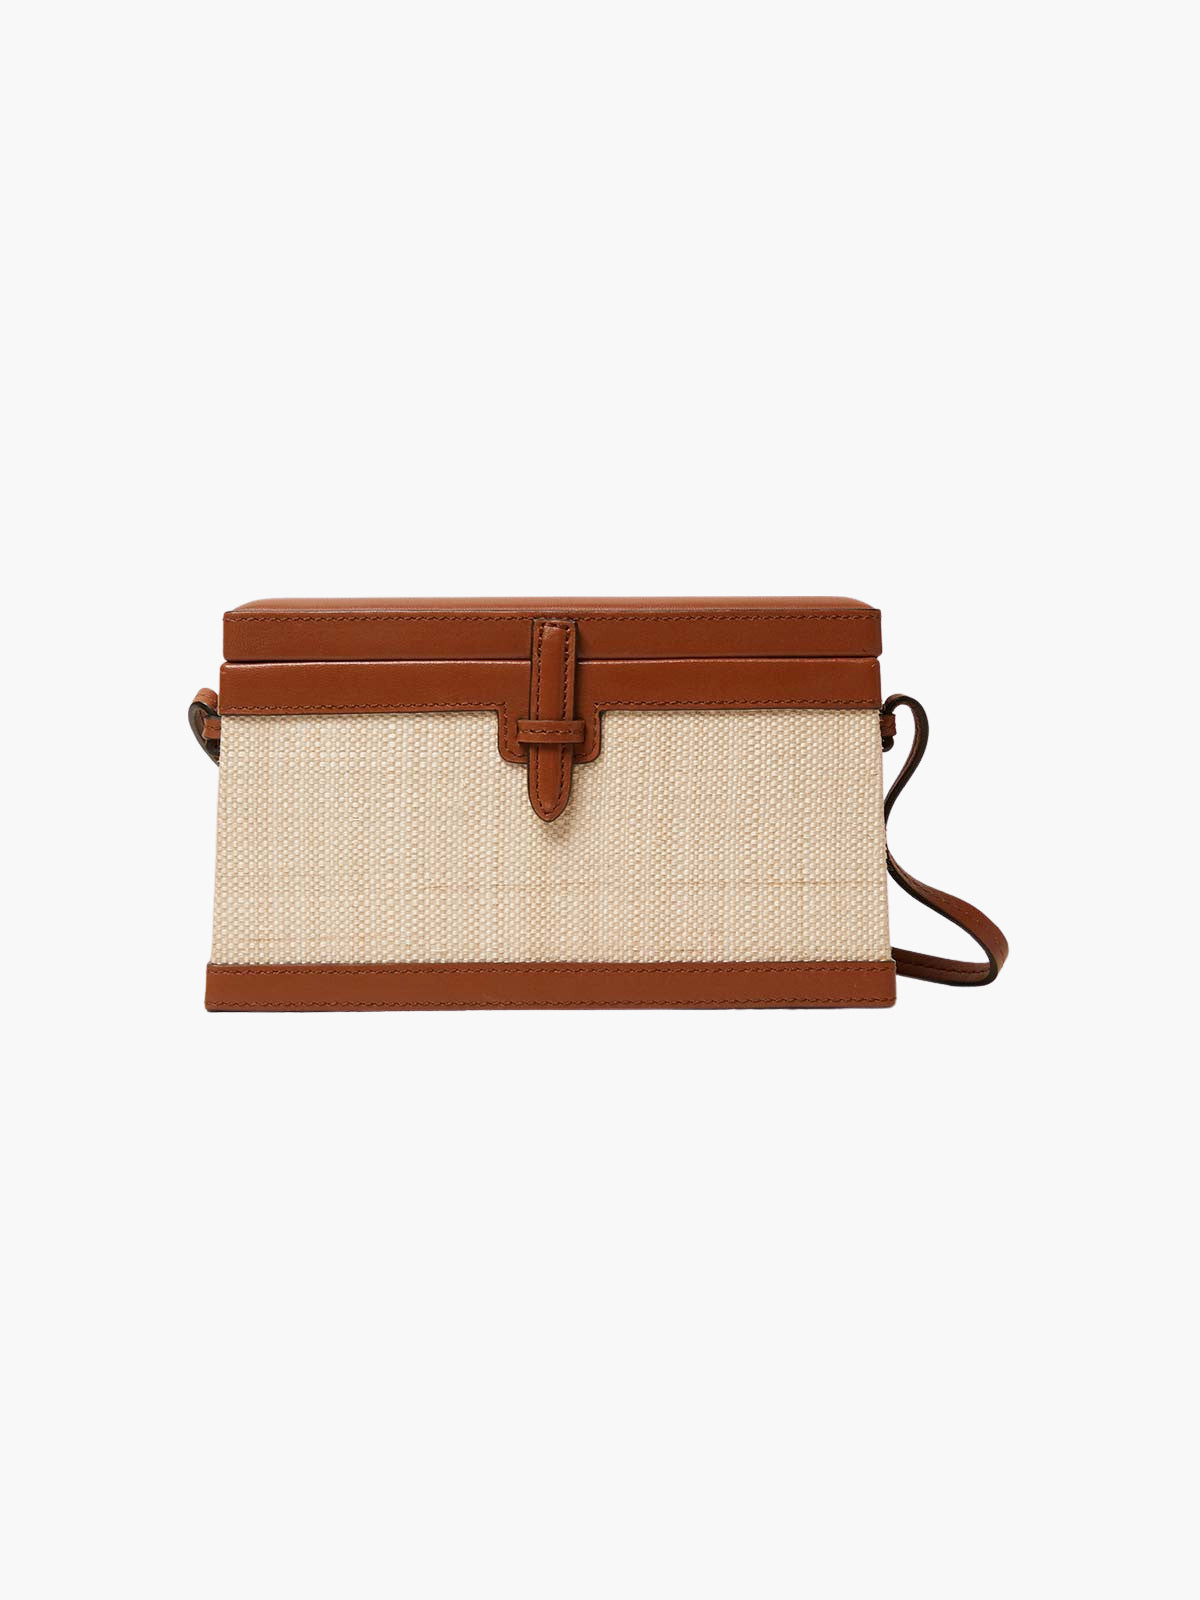 Square Trunk Bag | Cognac Iraca